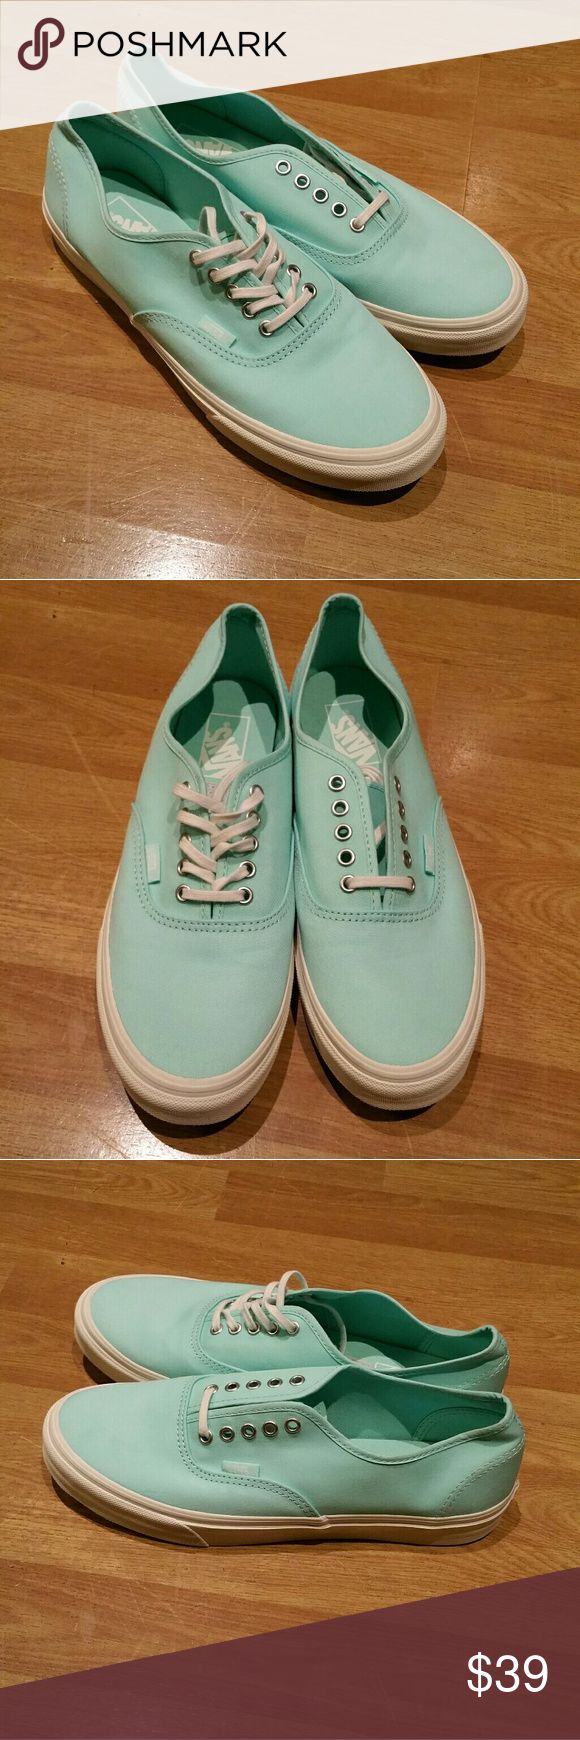 Womens Vans sneakers Brand New. Size 10. Never worn. Vans Shoes Sneakers